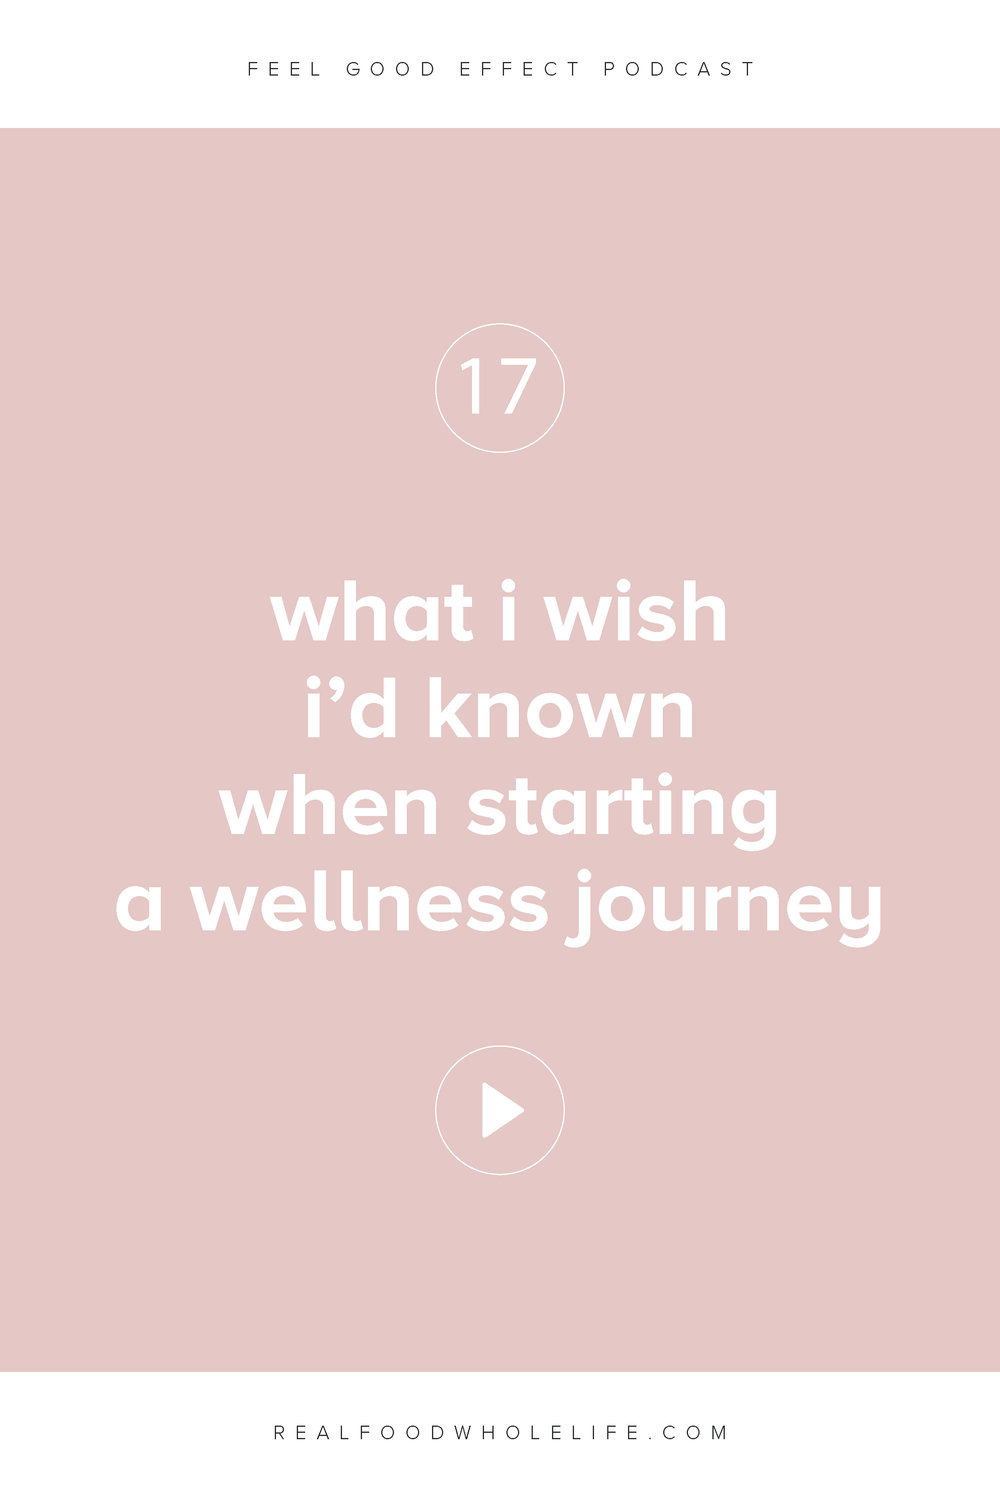 What I Wish I'd Known When Starting a Wellness Journey